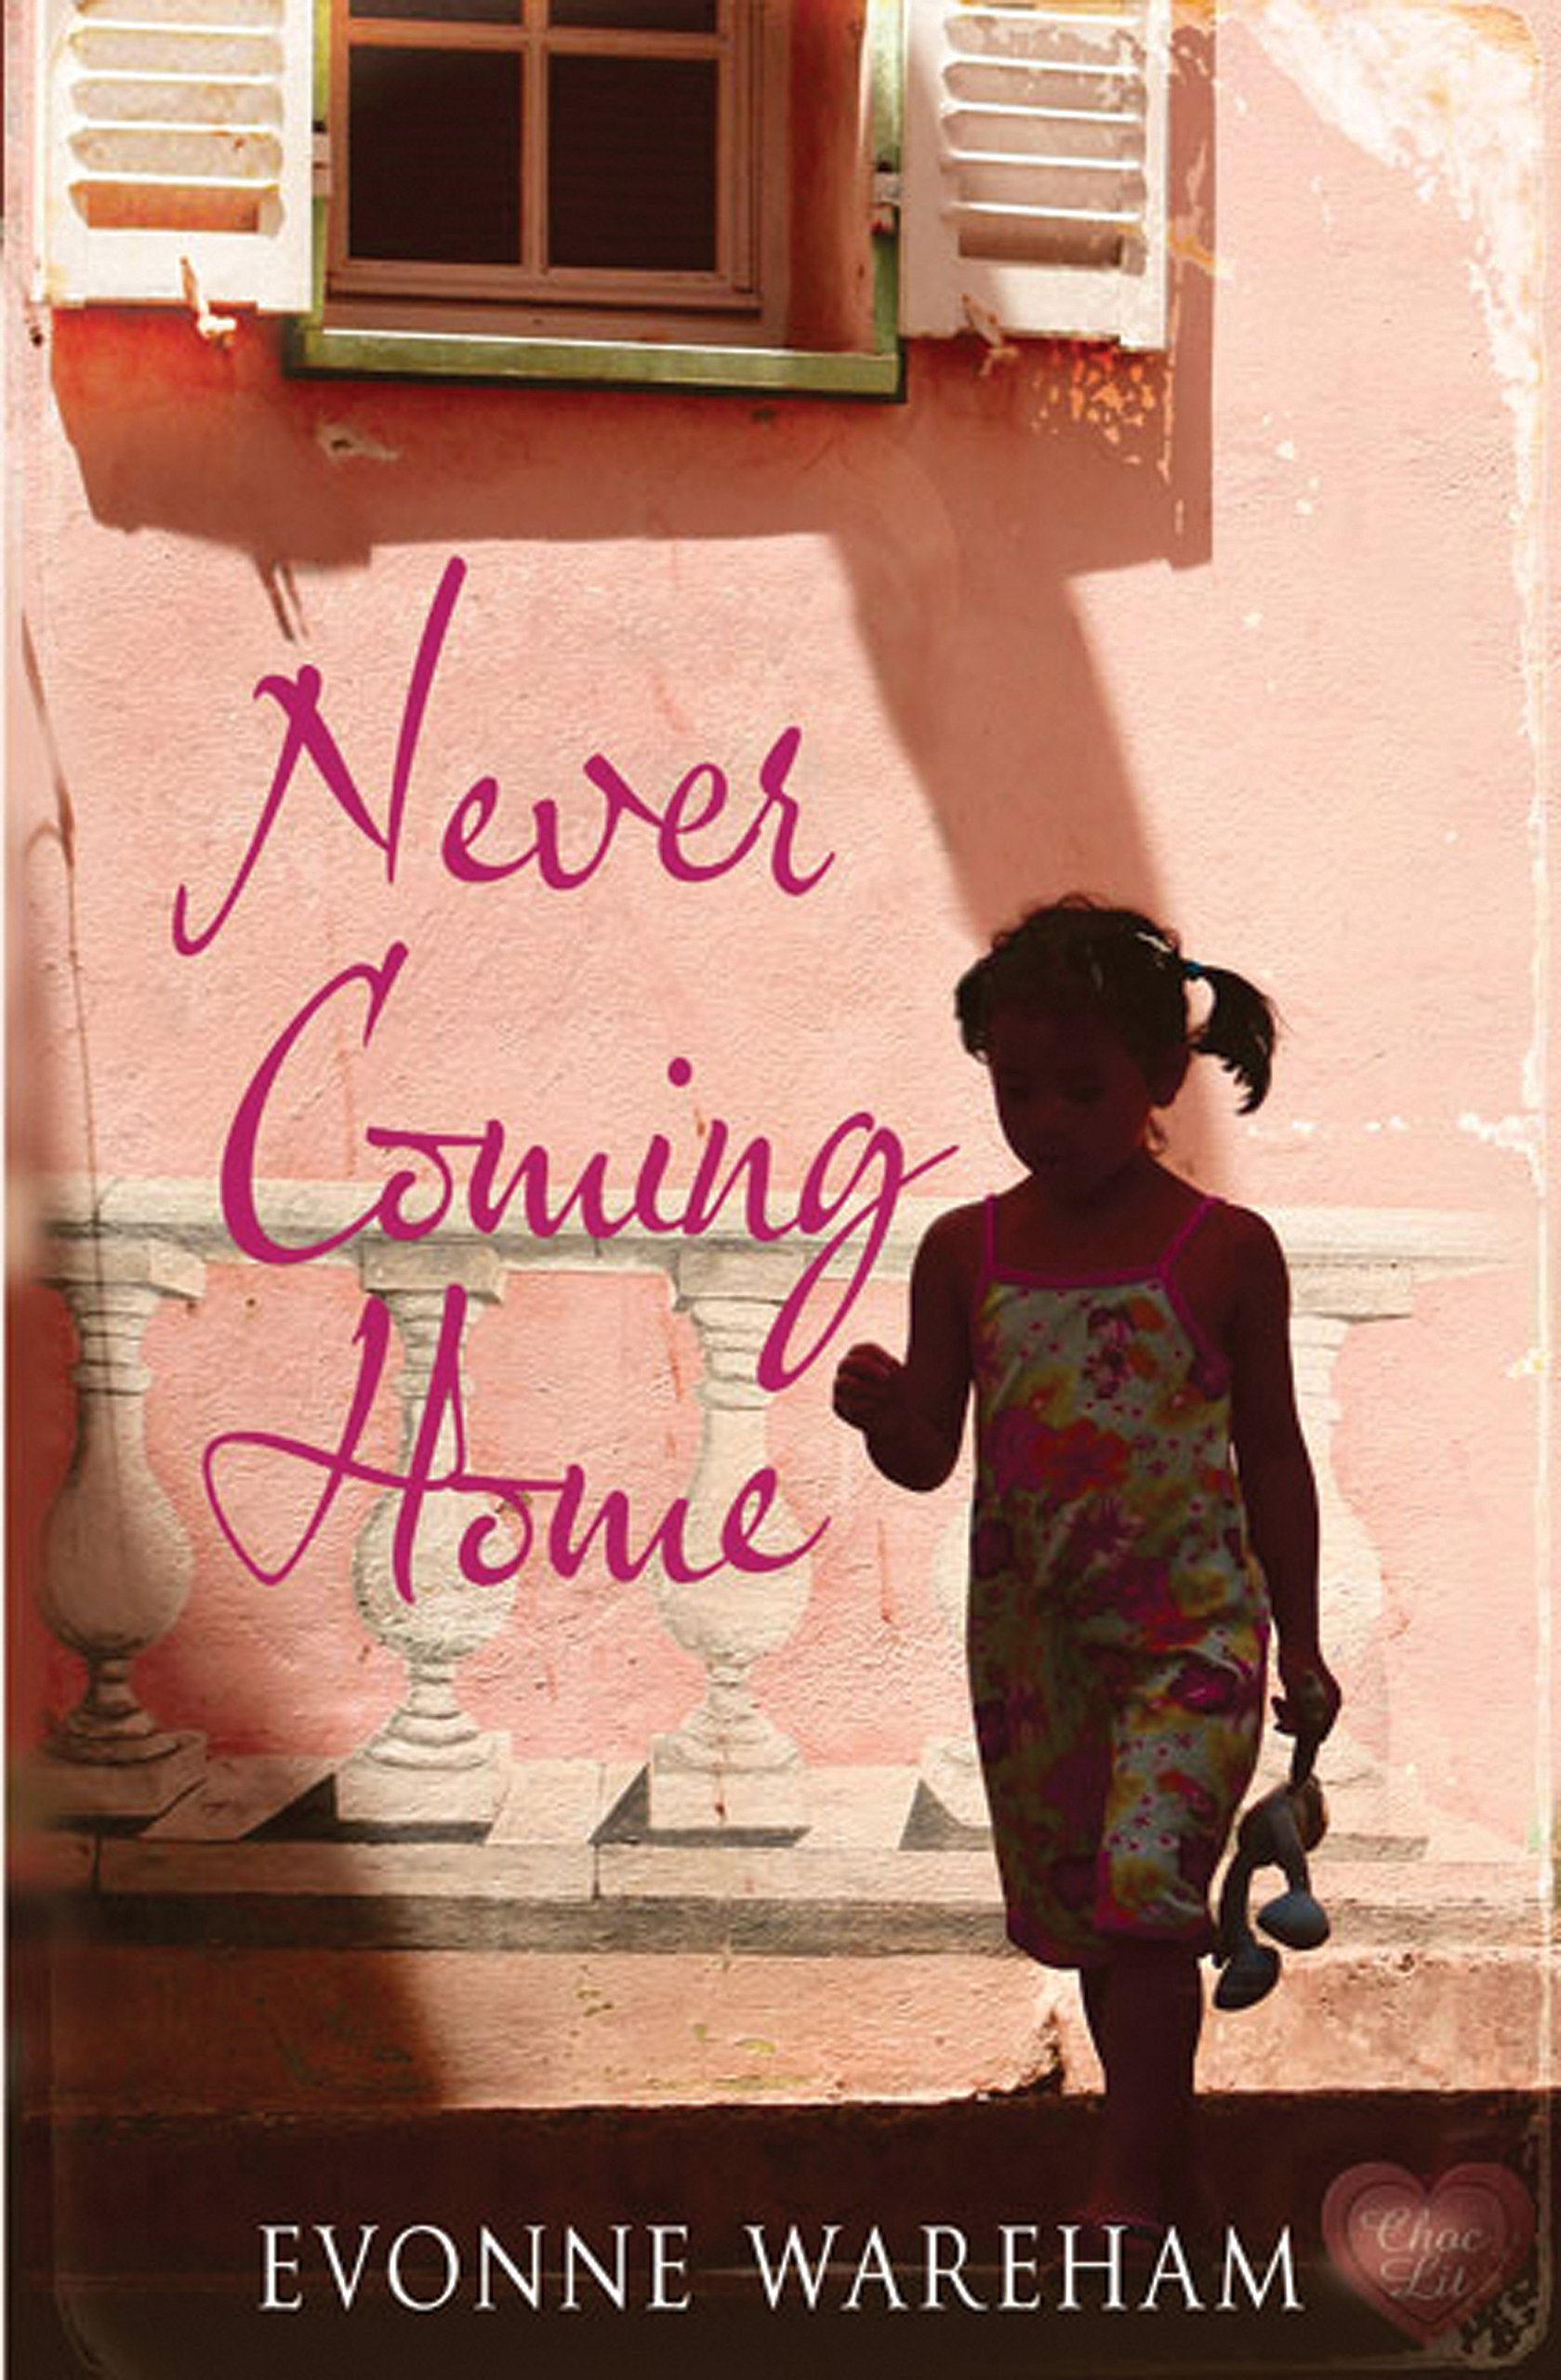 Never Coming Home: Evonne Wareham: 9781906931704: Amazon com